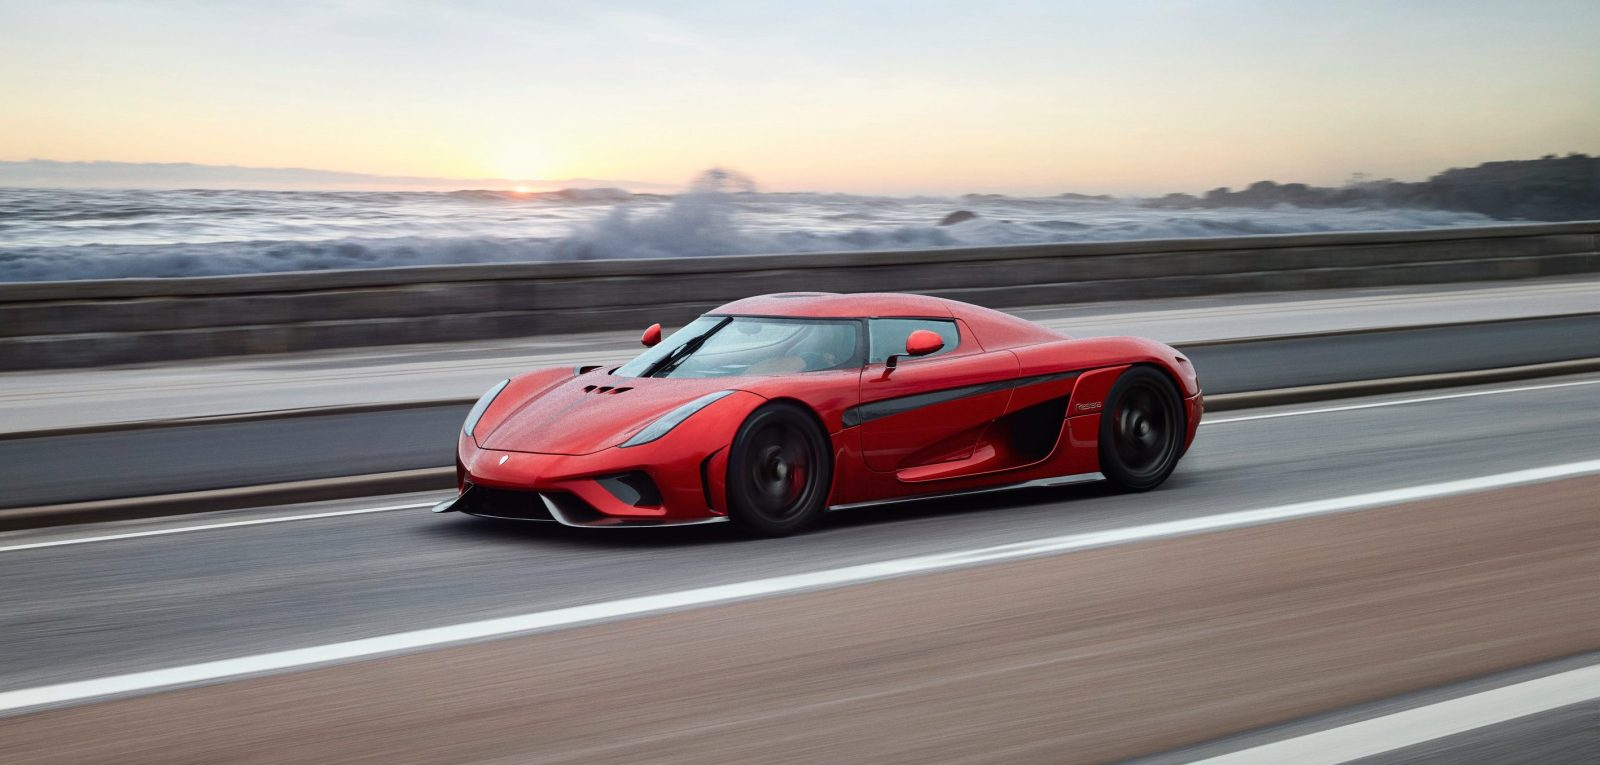 electrek charge forward koenigsegg takes 170 million investment from nevs says will ramp up electrification